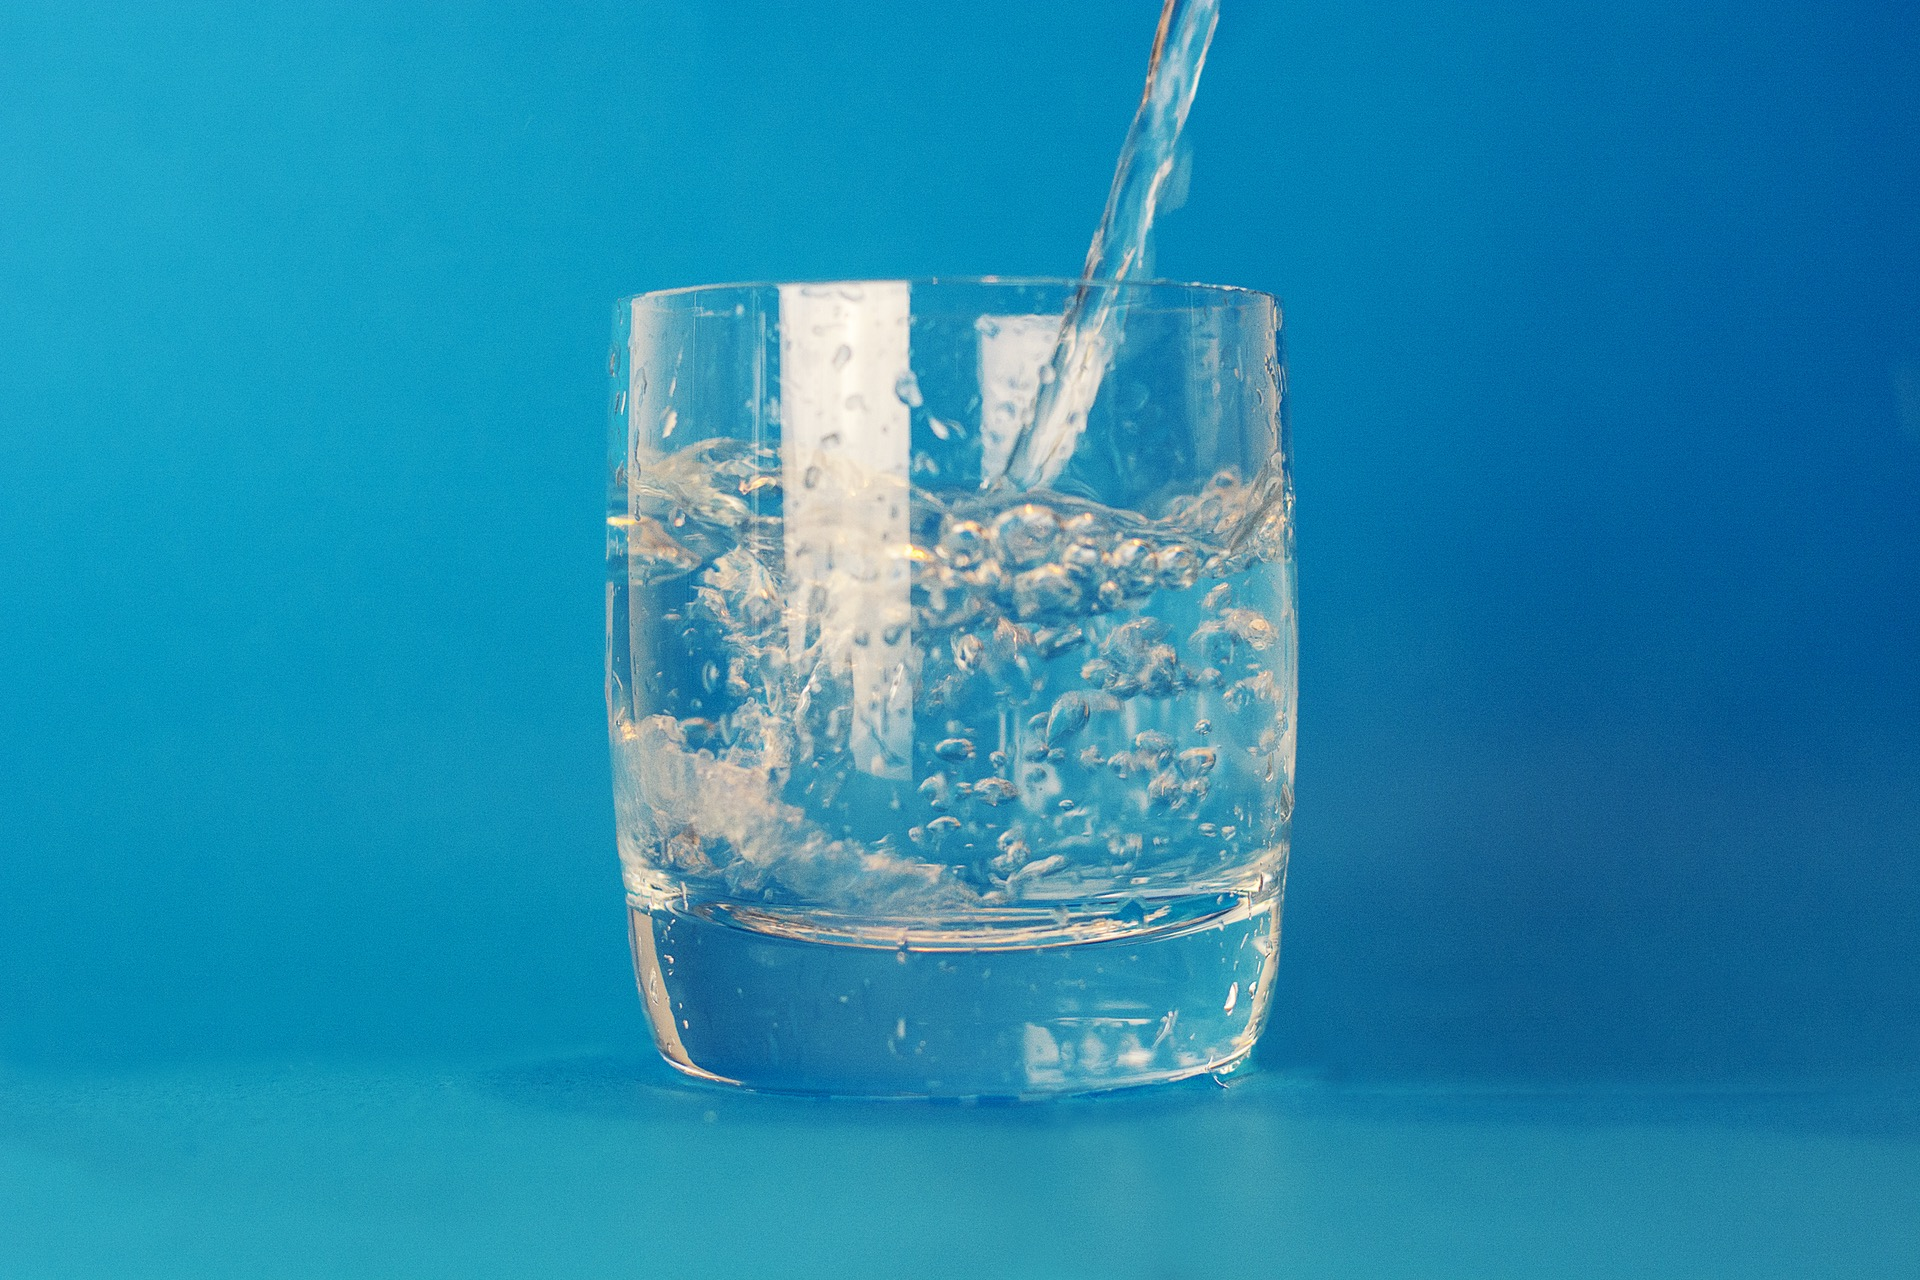 water-glass-theme-water-16490